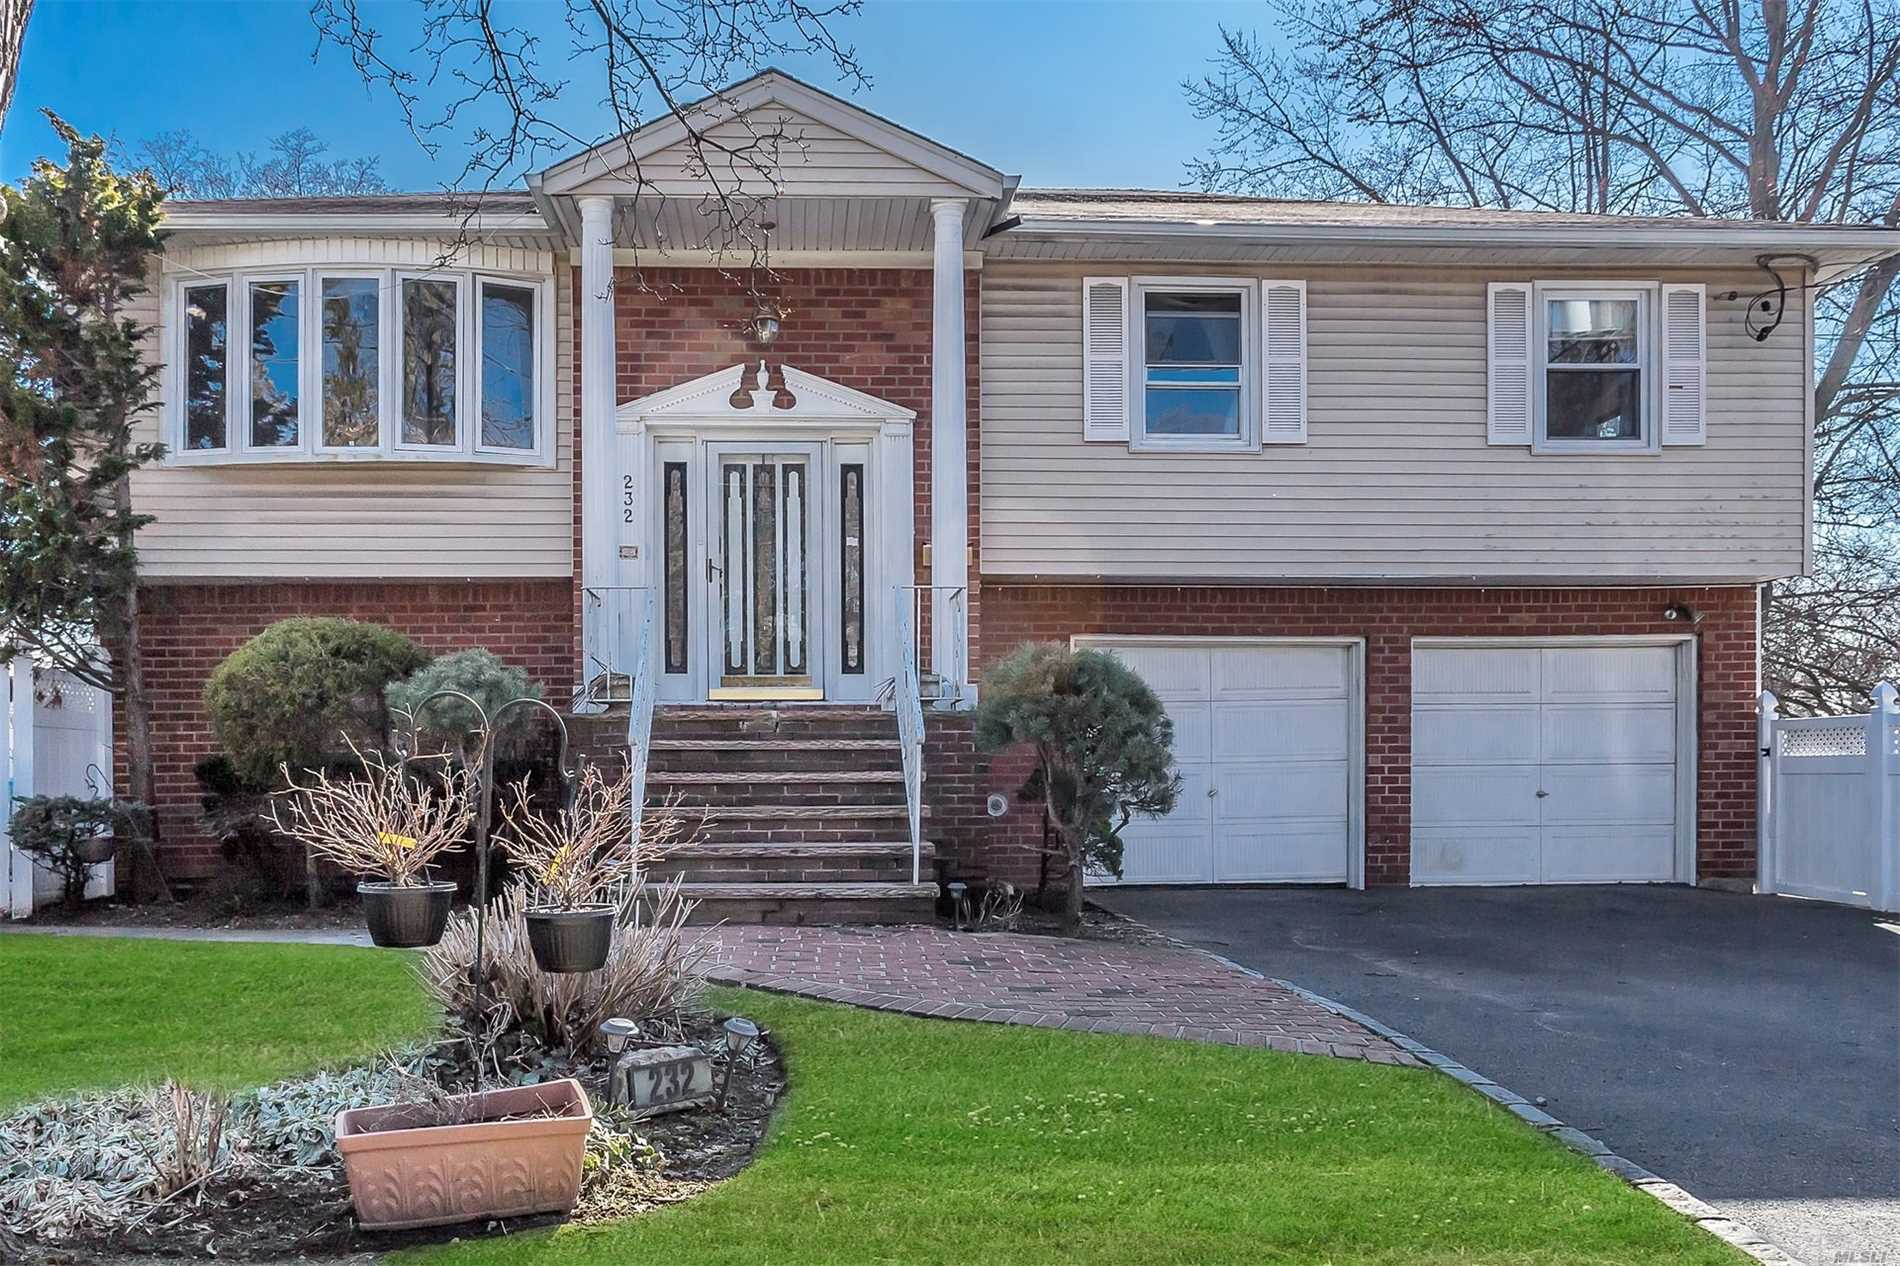 232 Locust St - W. Hempstead, New York